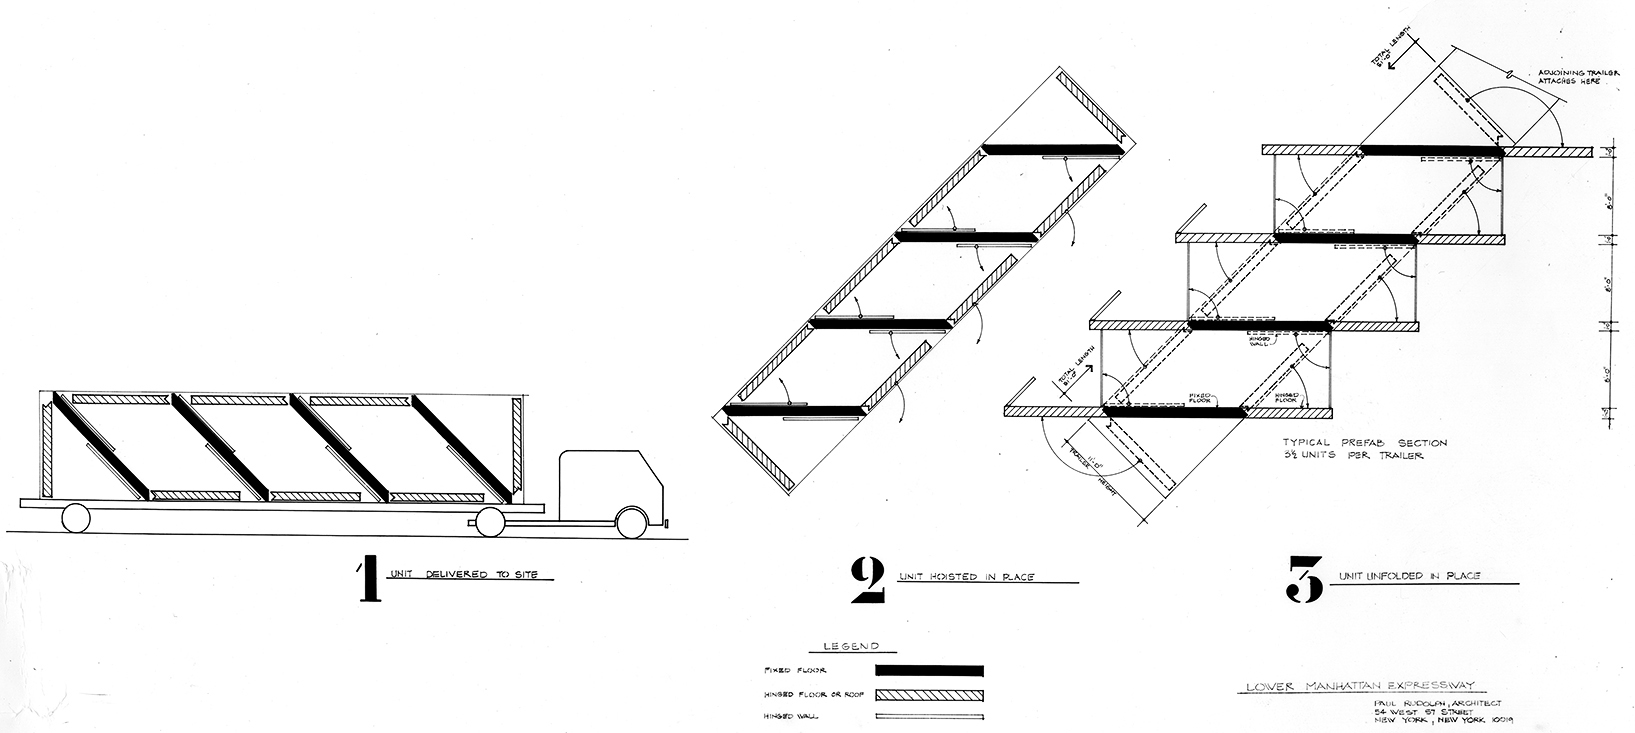 Lower Manhattan Expressway, New York City. Sketch Diagram Showing Prefabricated Stacking Units, Showing Delivery and Set-up.